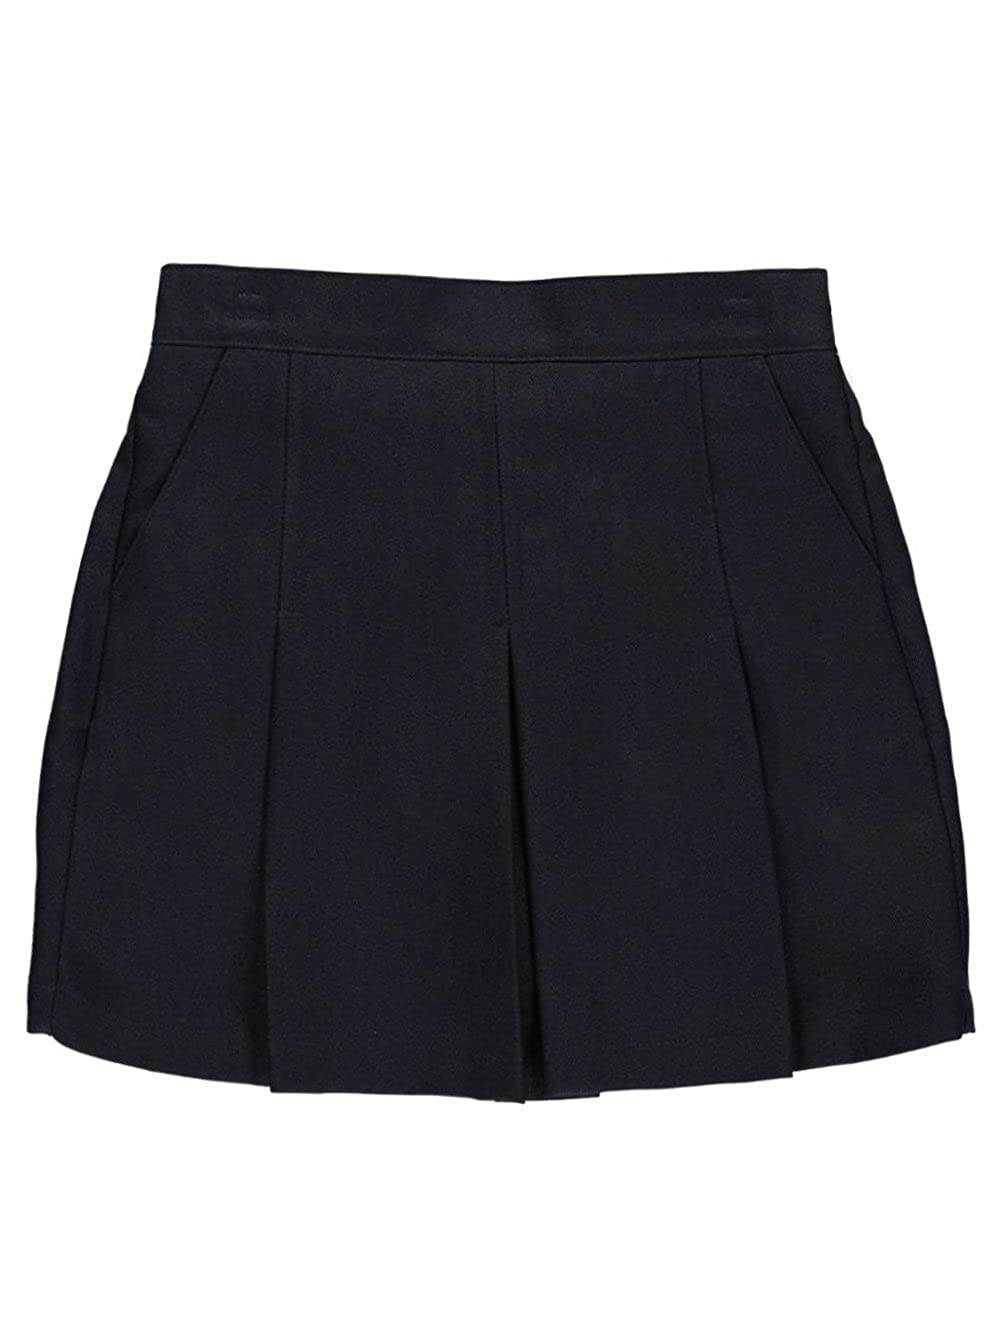 Nautica Big Girls' Kickpleat Scooter Skirt